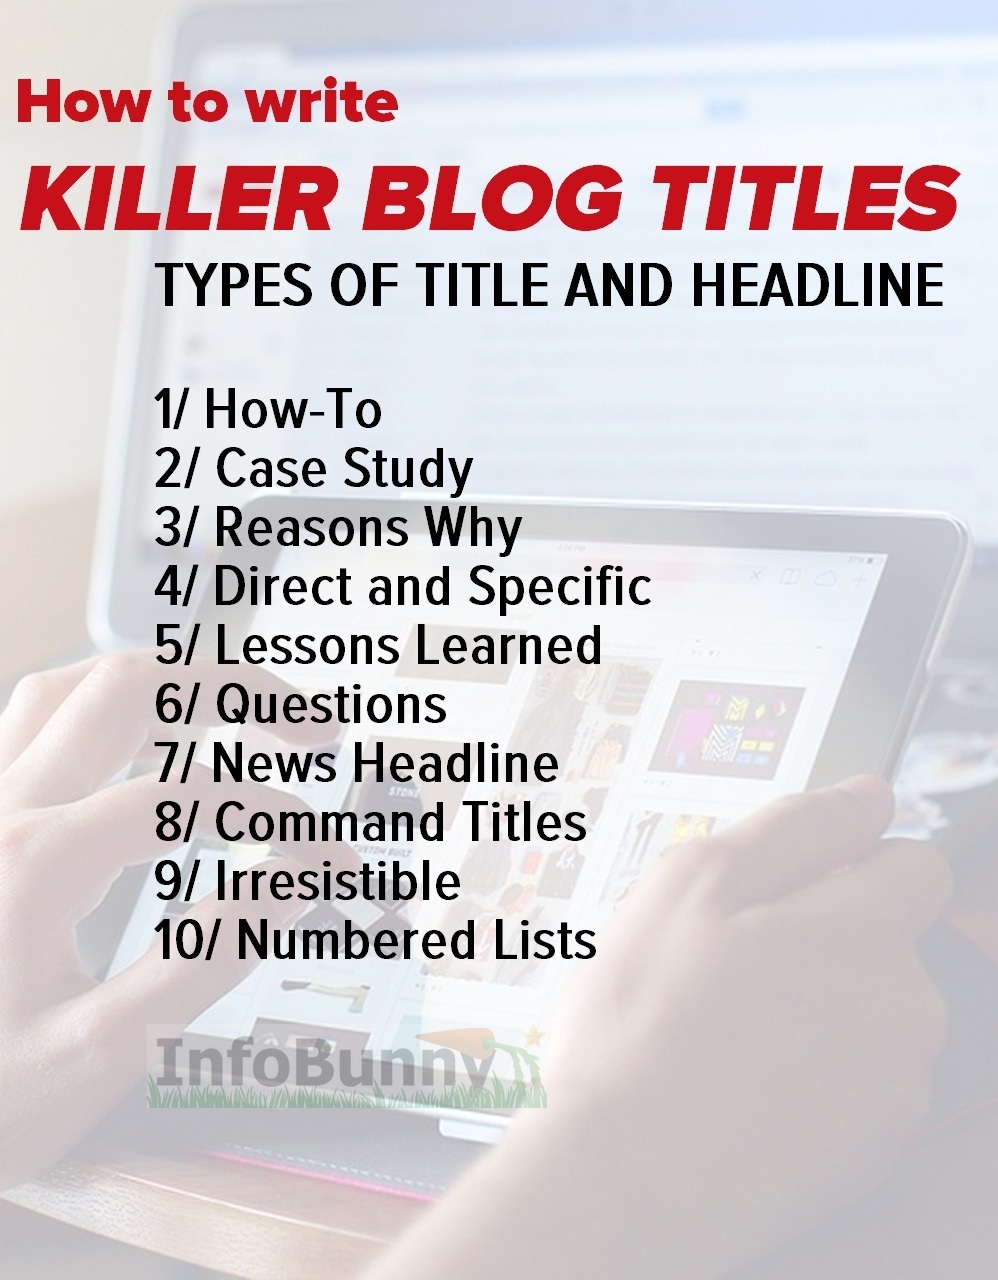 How to write Killer Blog articles